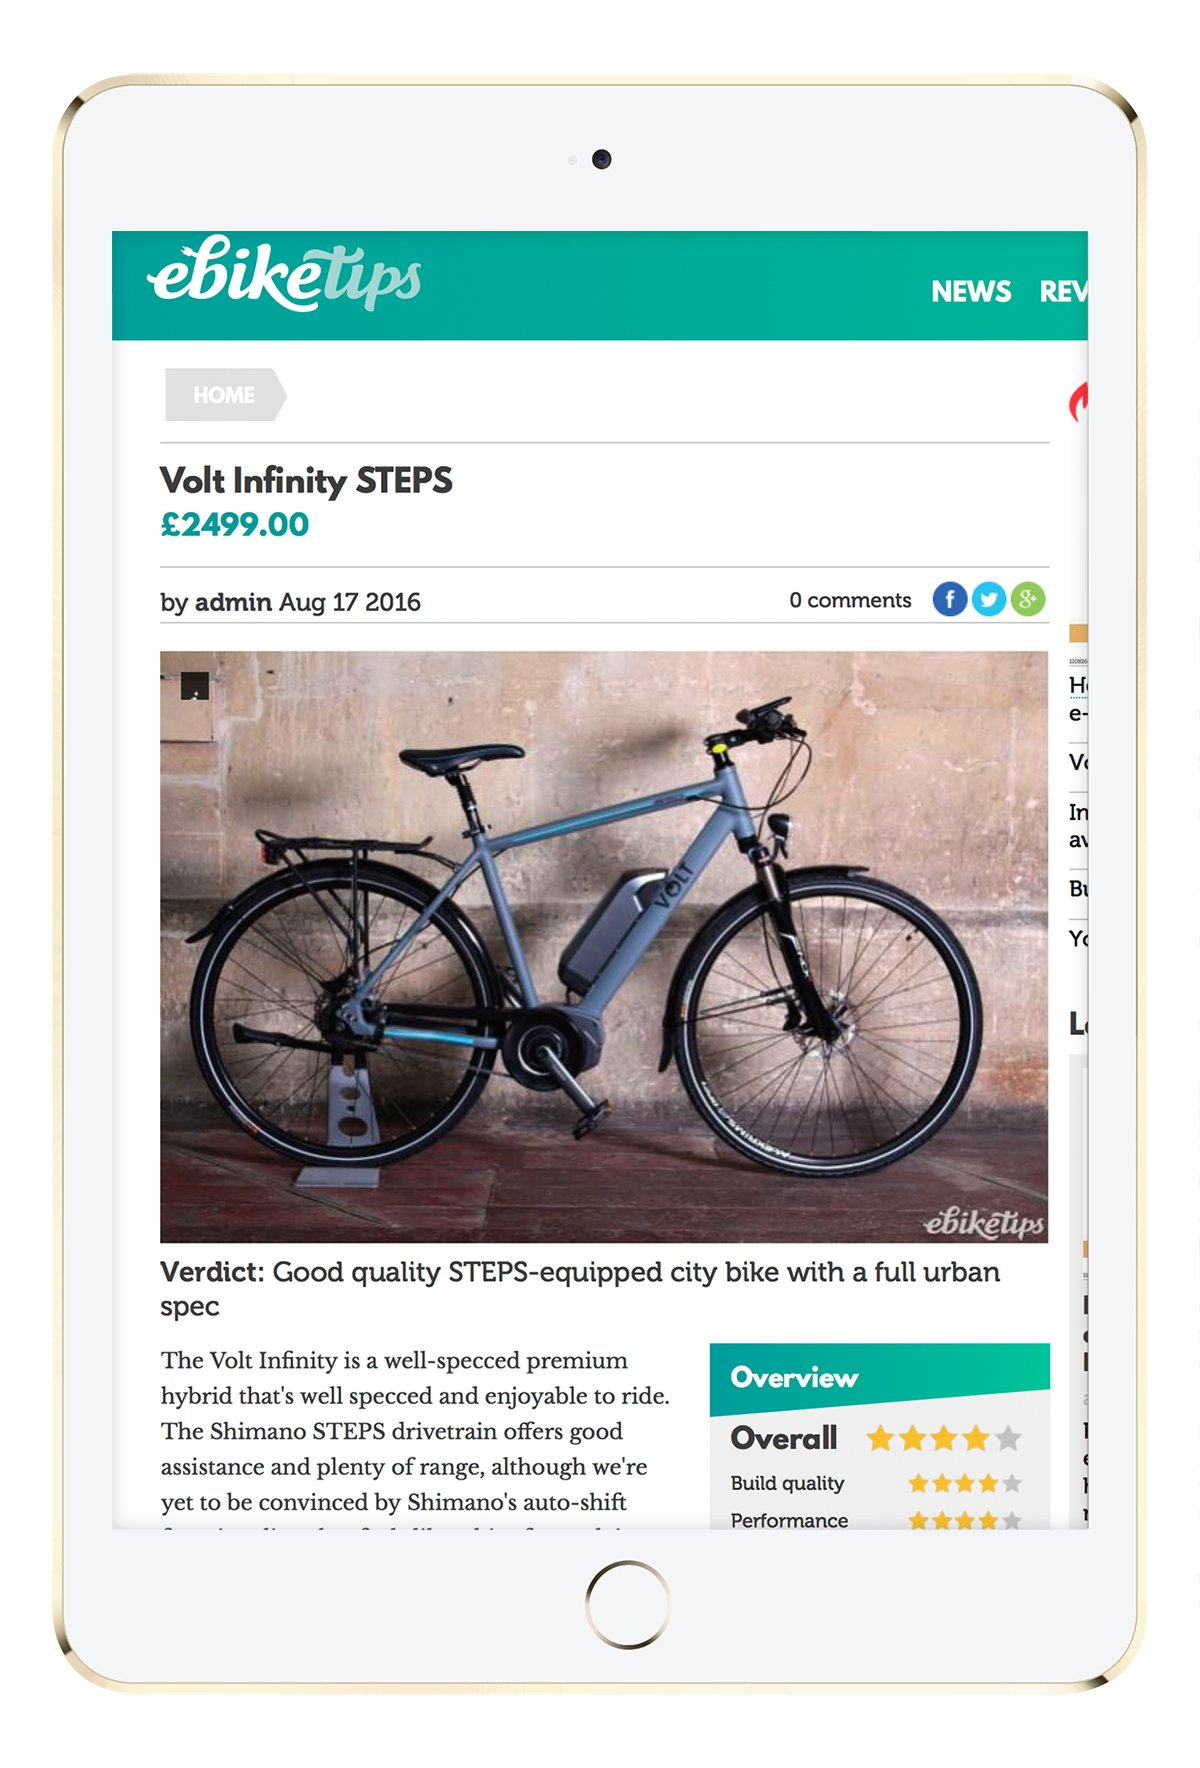 Ebike Tip website displayed on tablet